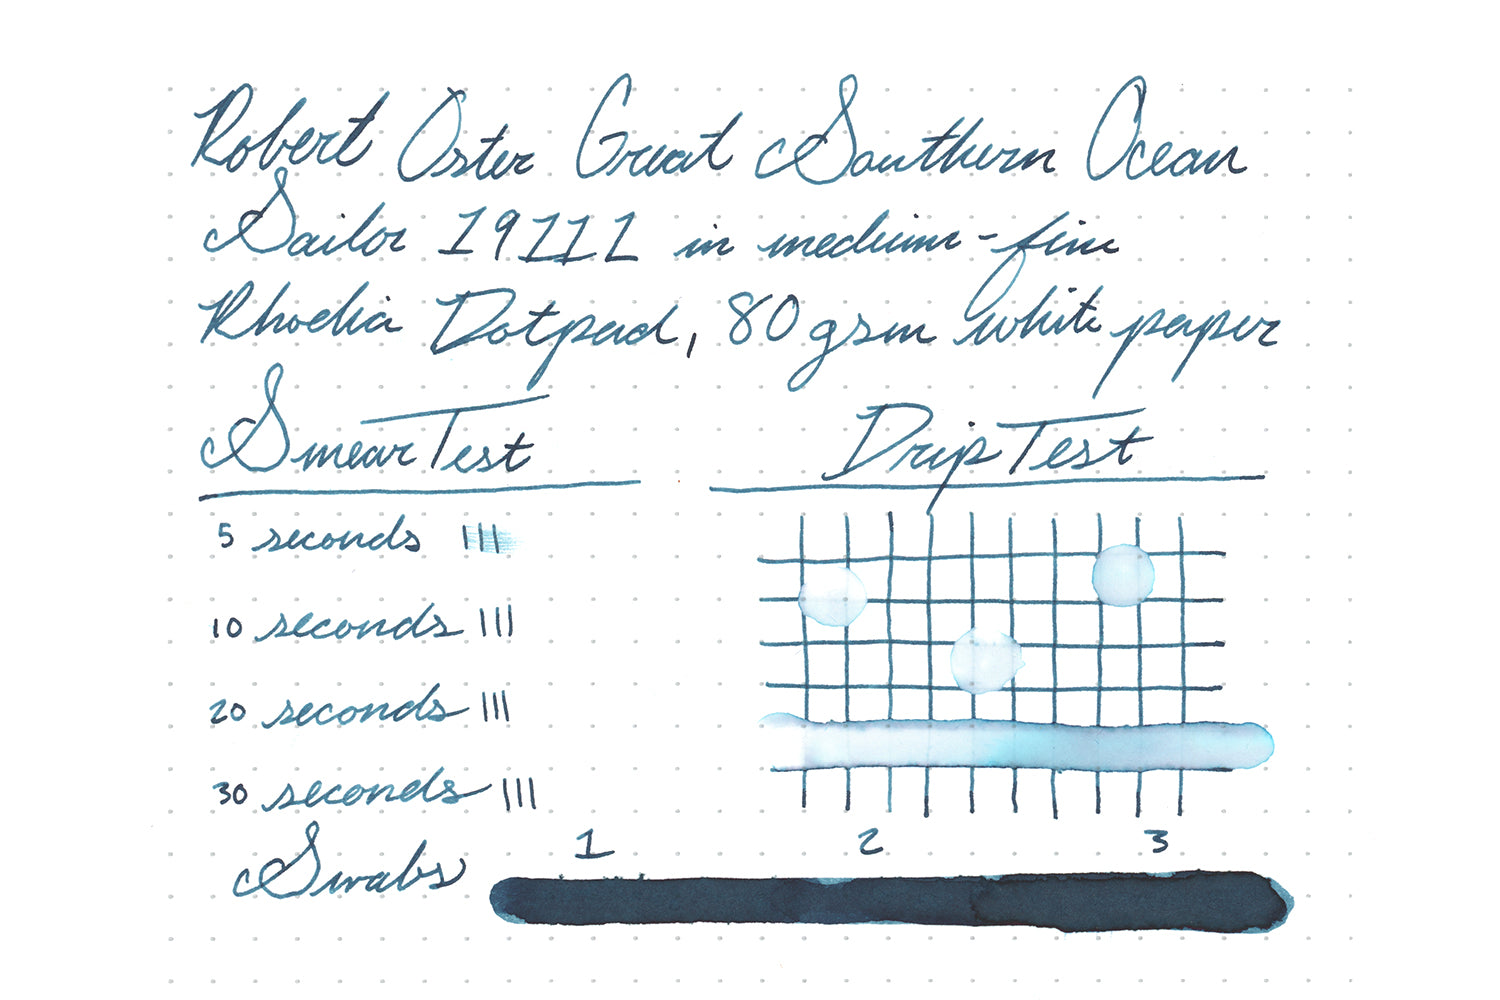 Robert Oster Great Southern Ocean - Ink Sample